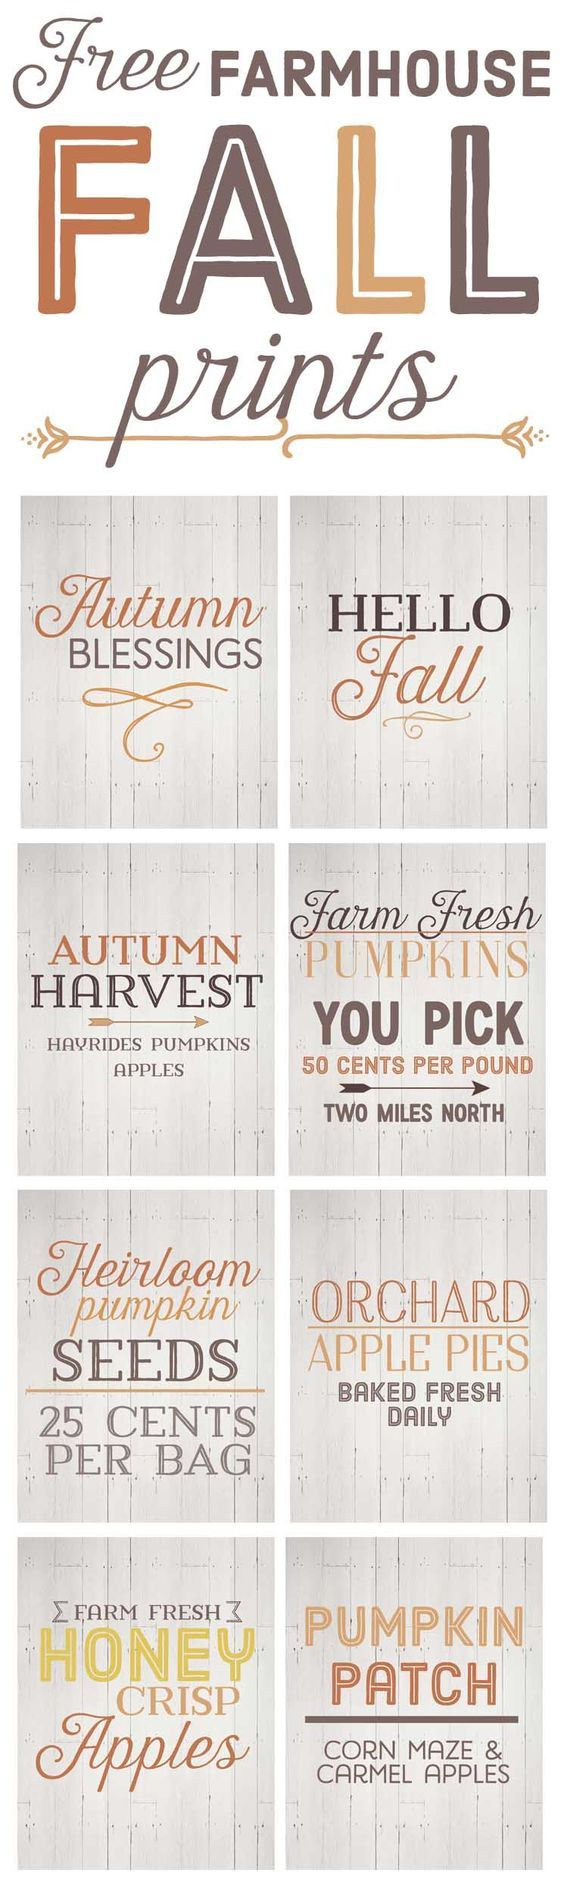 Free Fall Farmhouse Printables-fall farmhouse decor-fall home decor ideas-www.themountainviewcottage.net